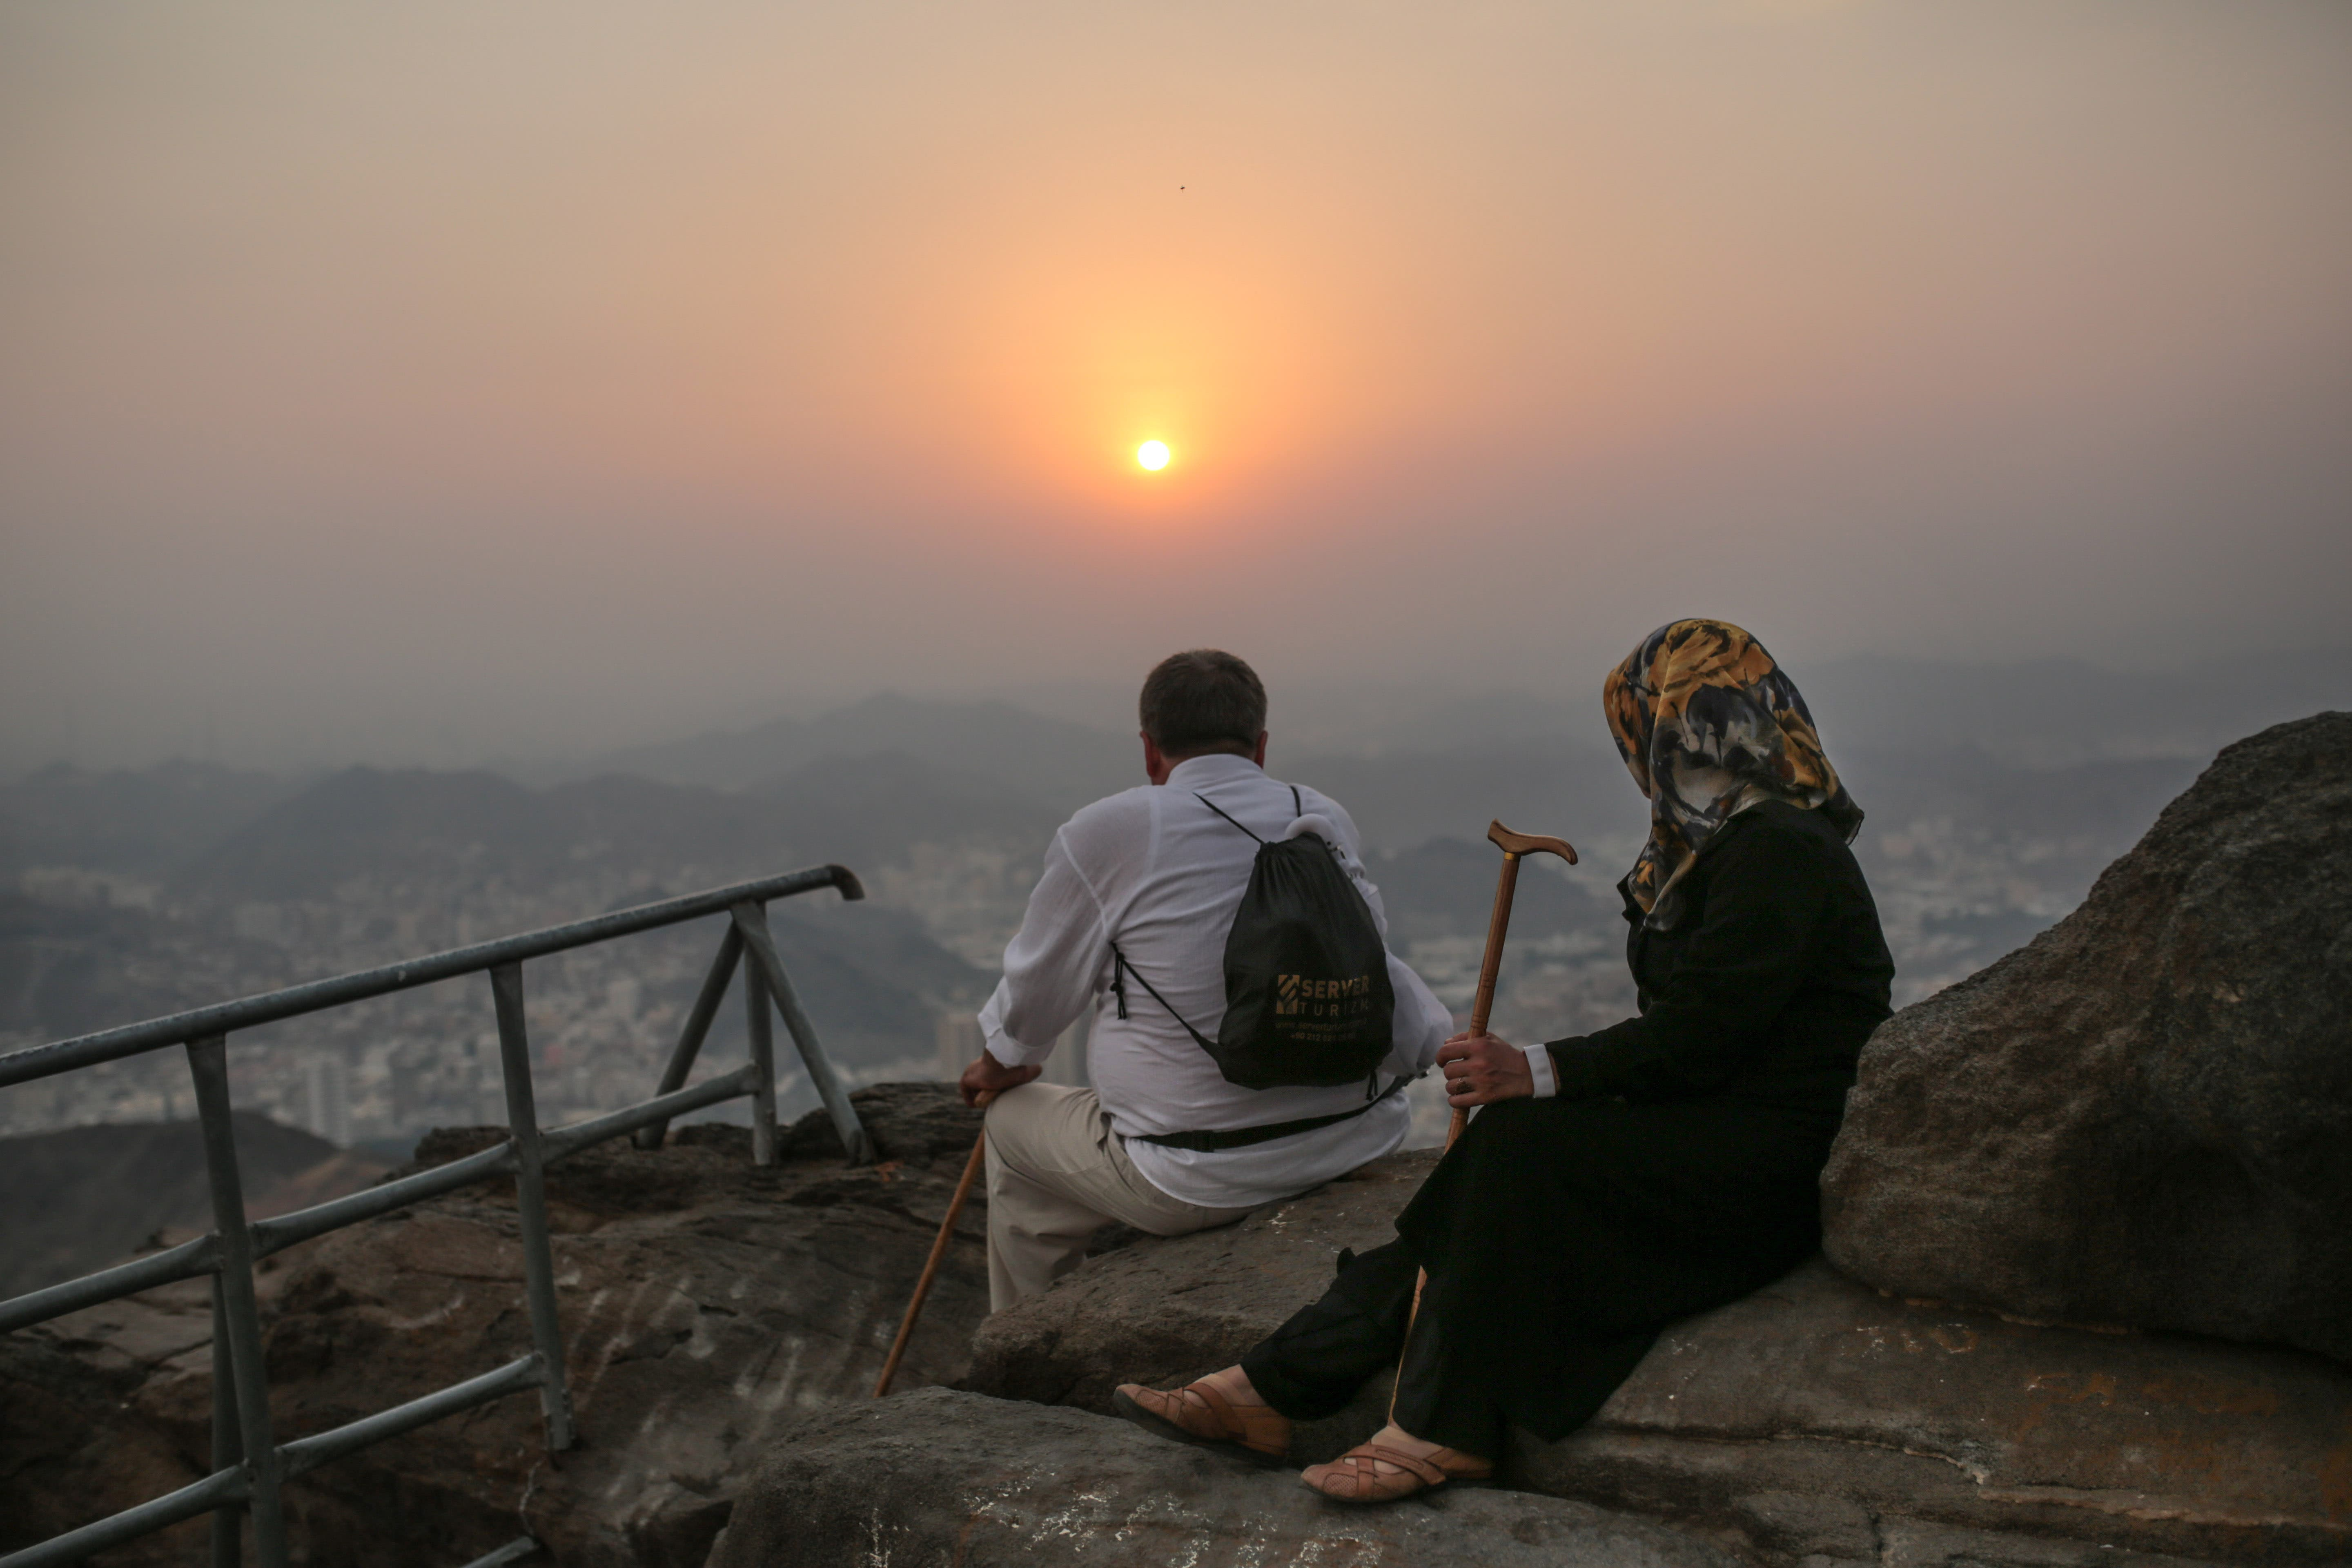 Muslim pilgrims observe sunset from atop Noor Mountain next to Hiraa cave, where Prophet Muhammad received his first revelation from God to preach Islam, on the outskirts of Mecca, Saudi Arabia, Friday, Sept. 18, 2015. (AP)